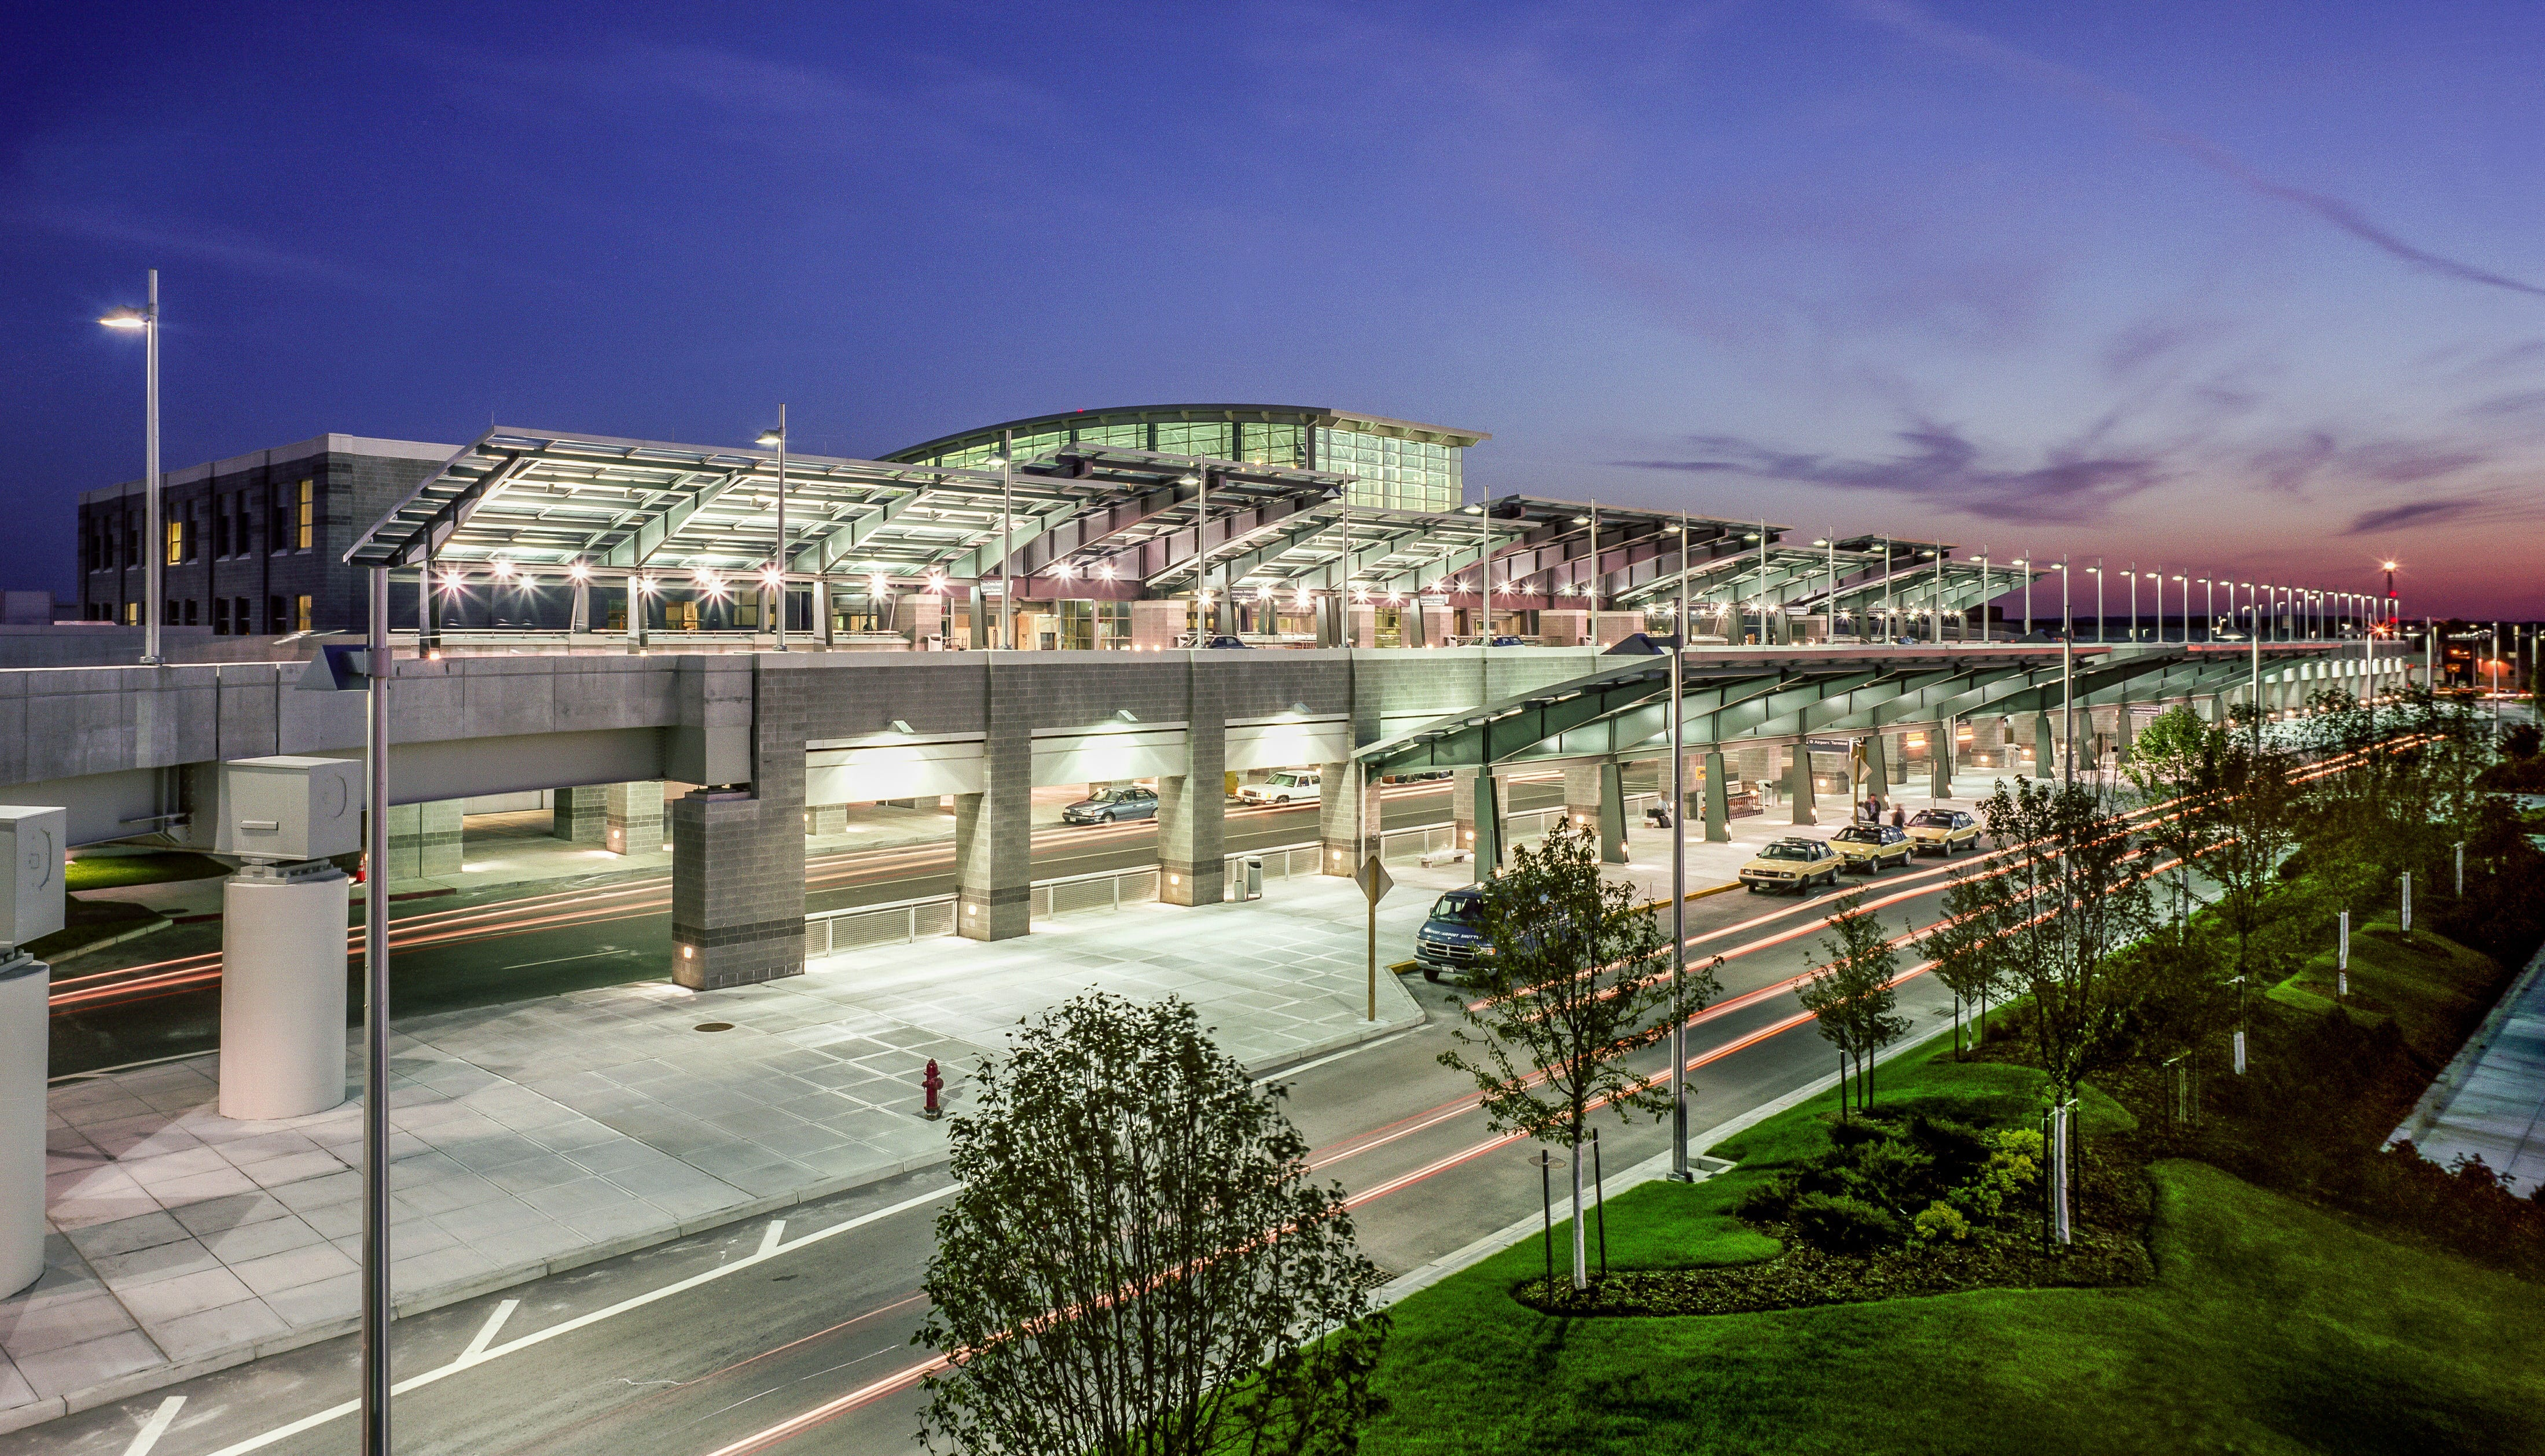 These are the top 10 small airports in the US, according to readers